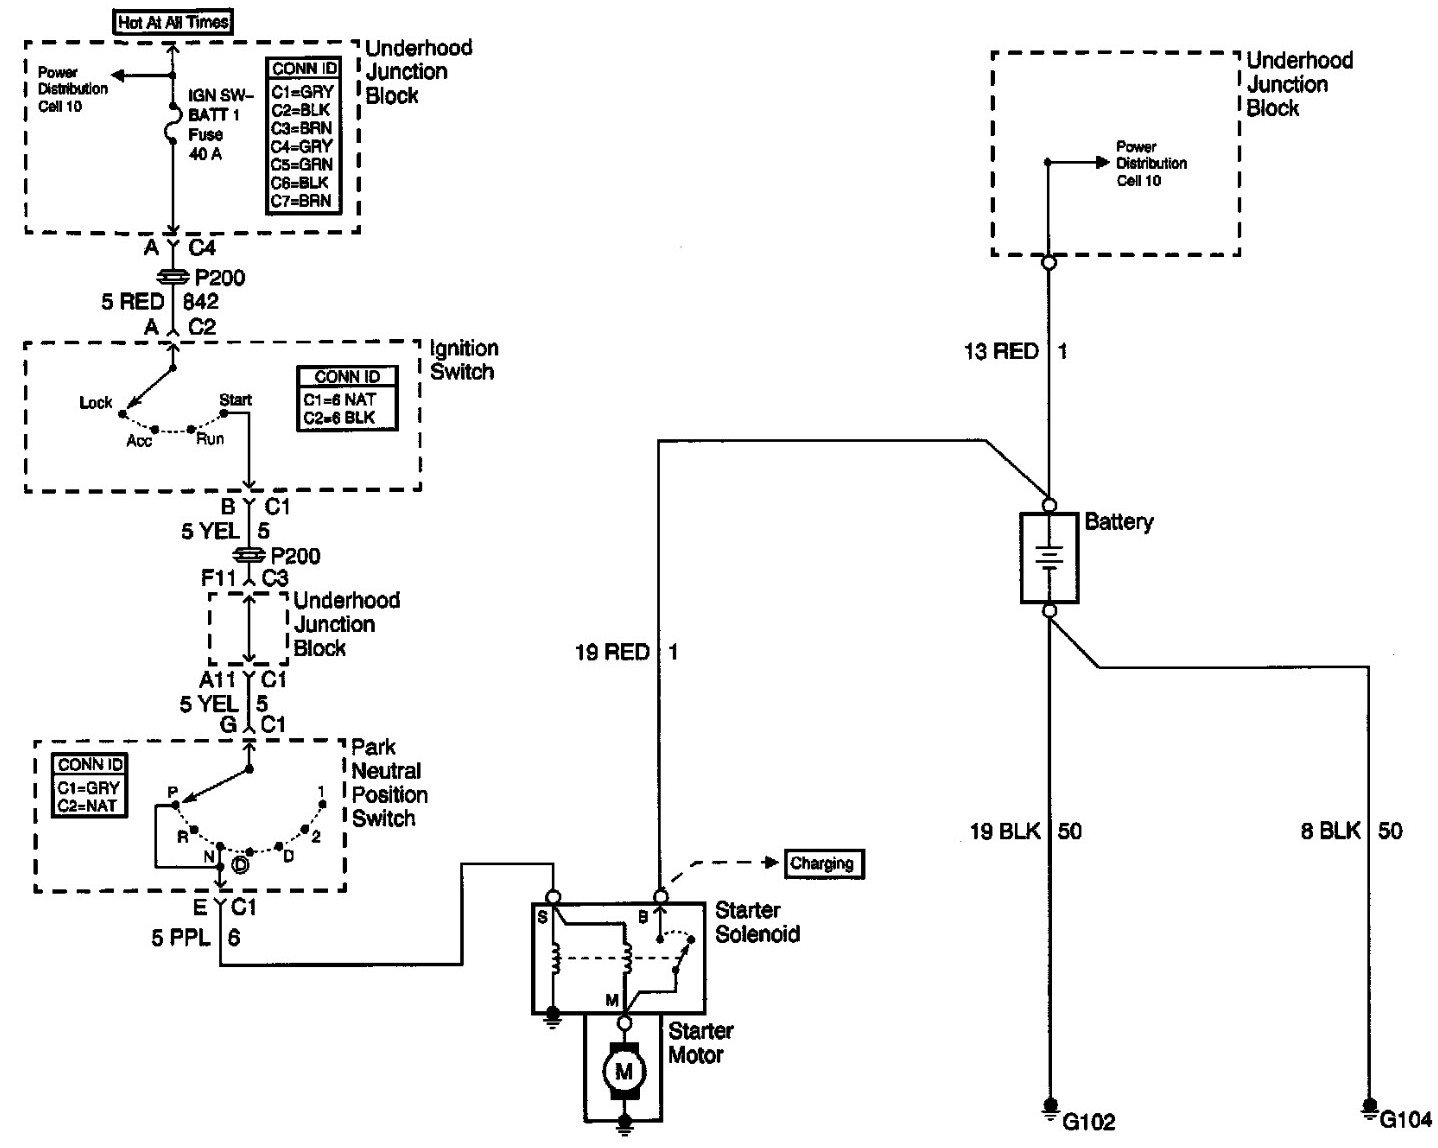 Chevy Malibu Ignition Switch Wiring Diagram